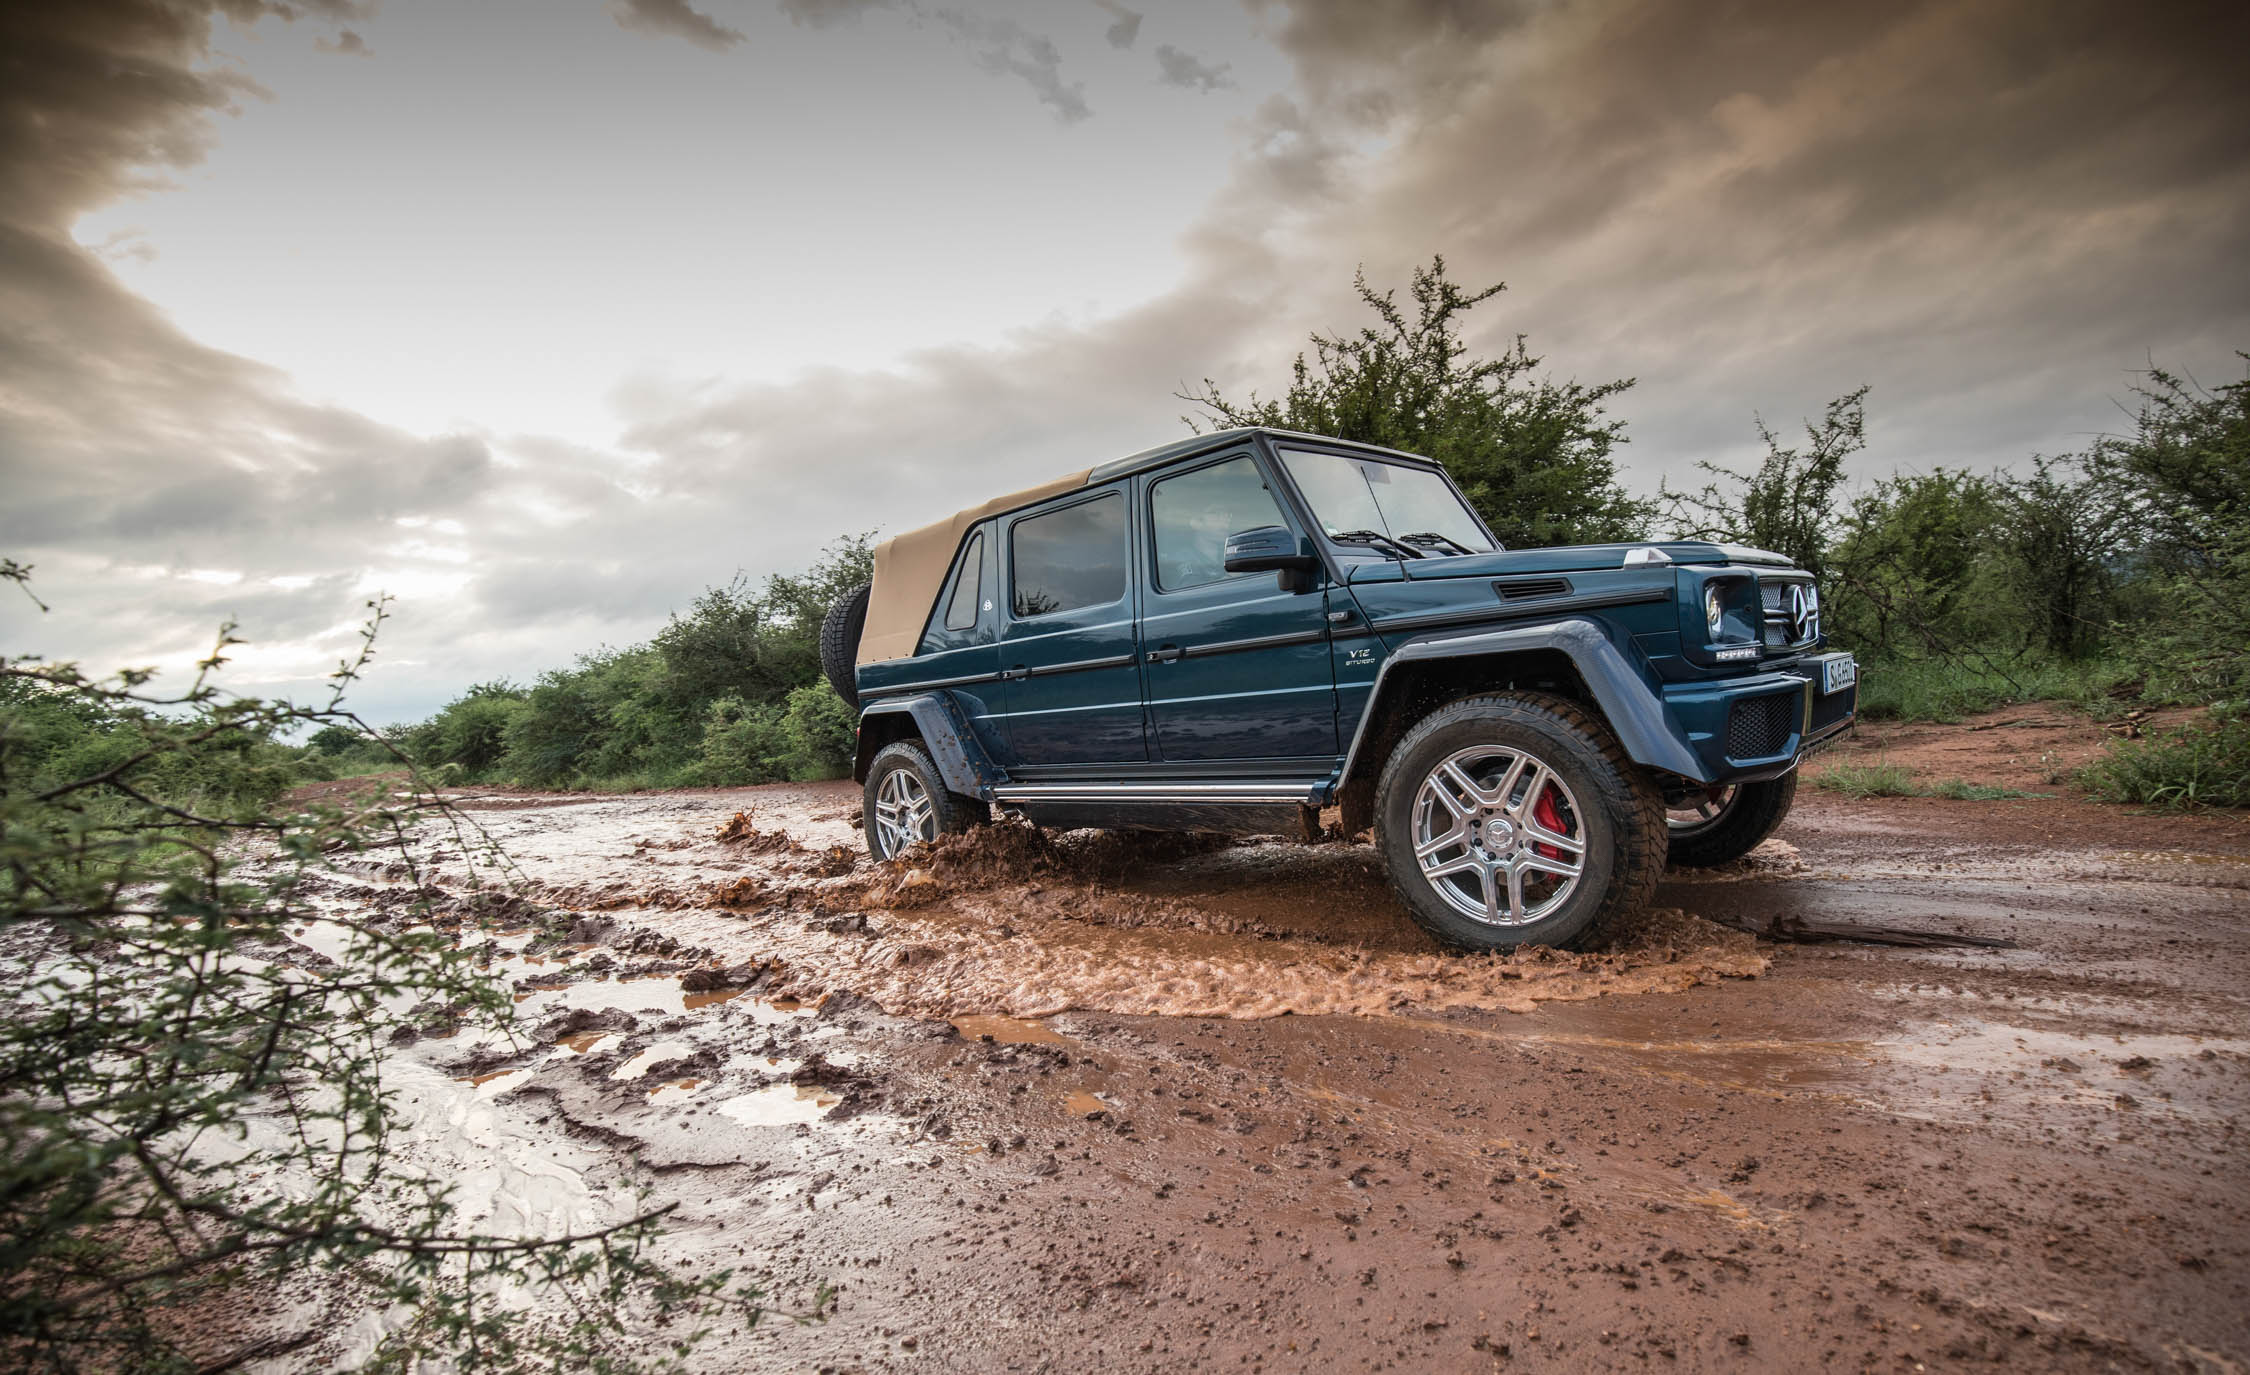 2018 Mercedes Maybach G650 Landaulet Off Road Test Side And Front View (Photo 23 of 52)